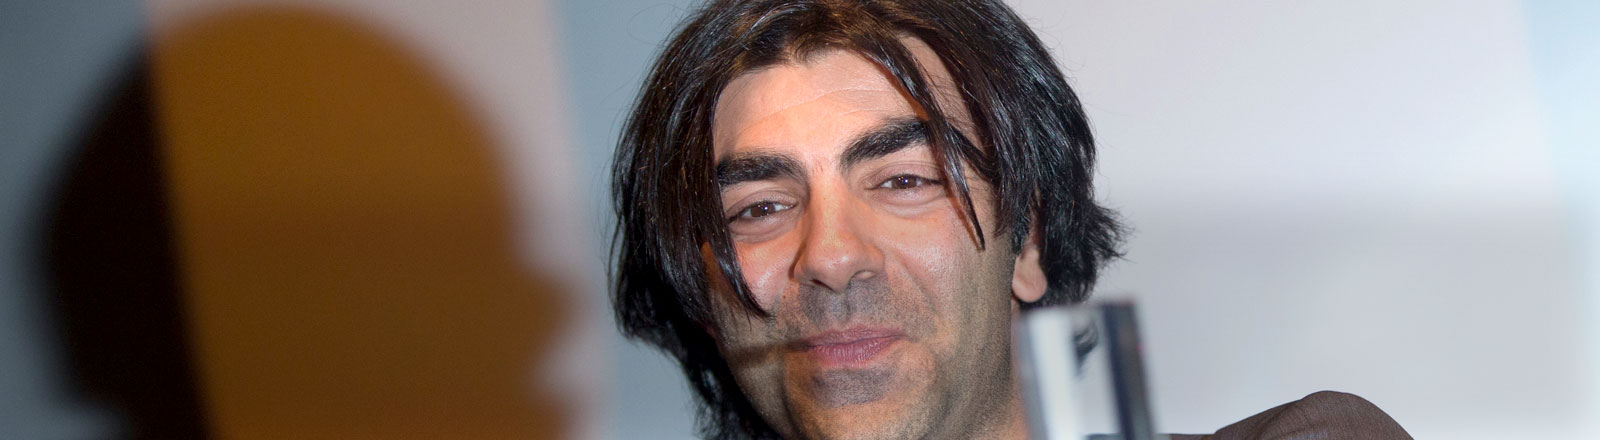 Fatih Akin beim Filmfest in Hamburg im September 2014.